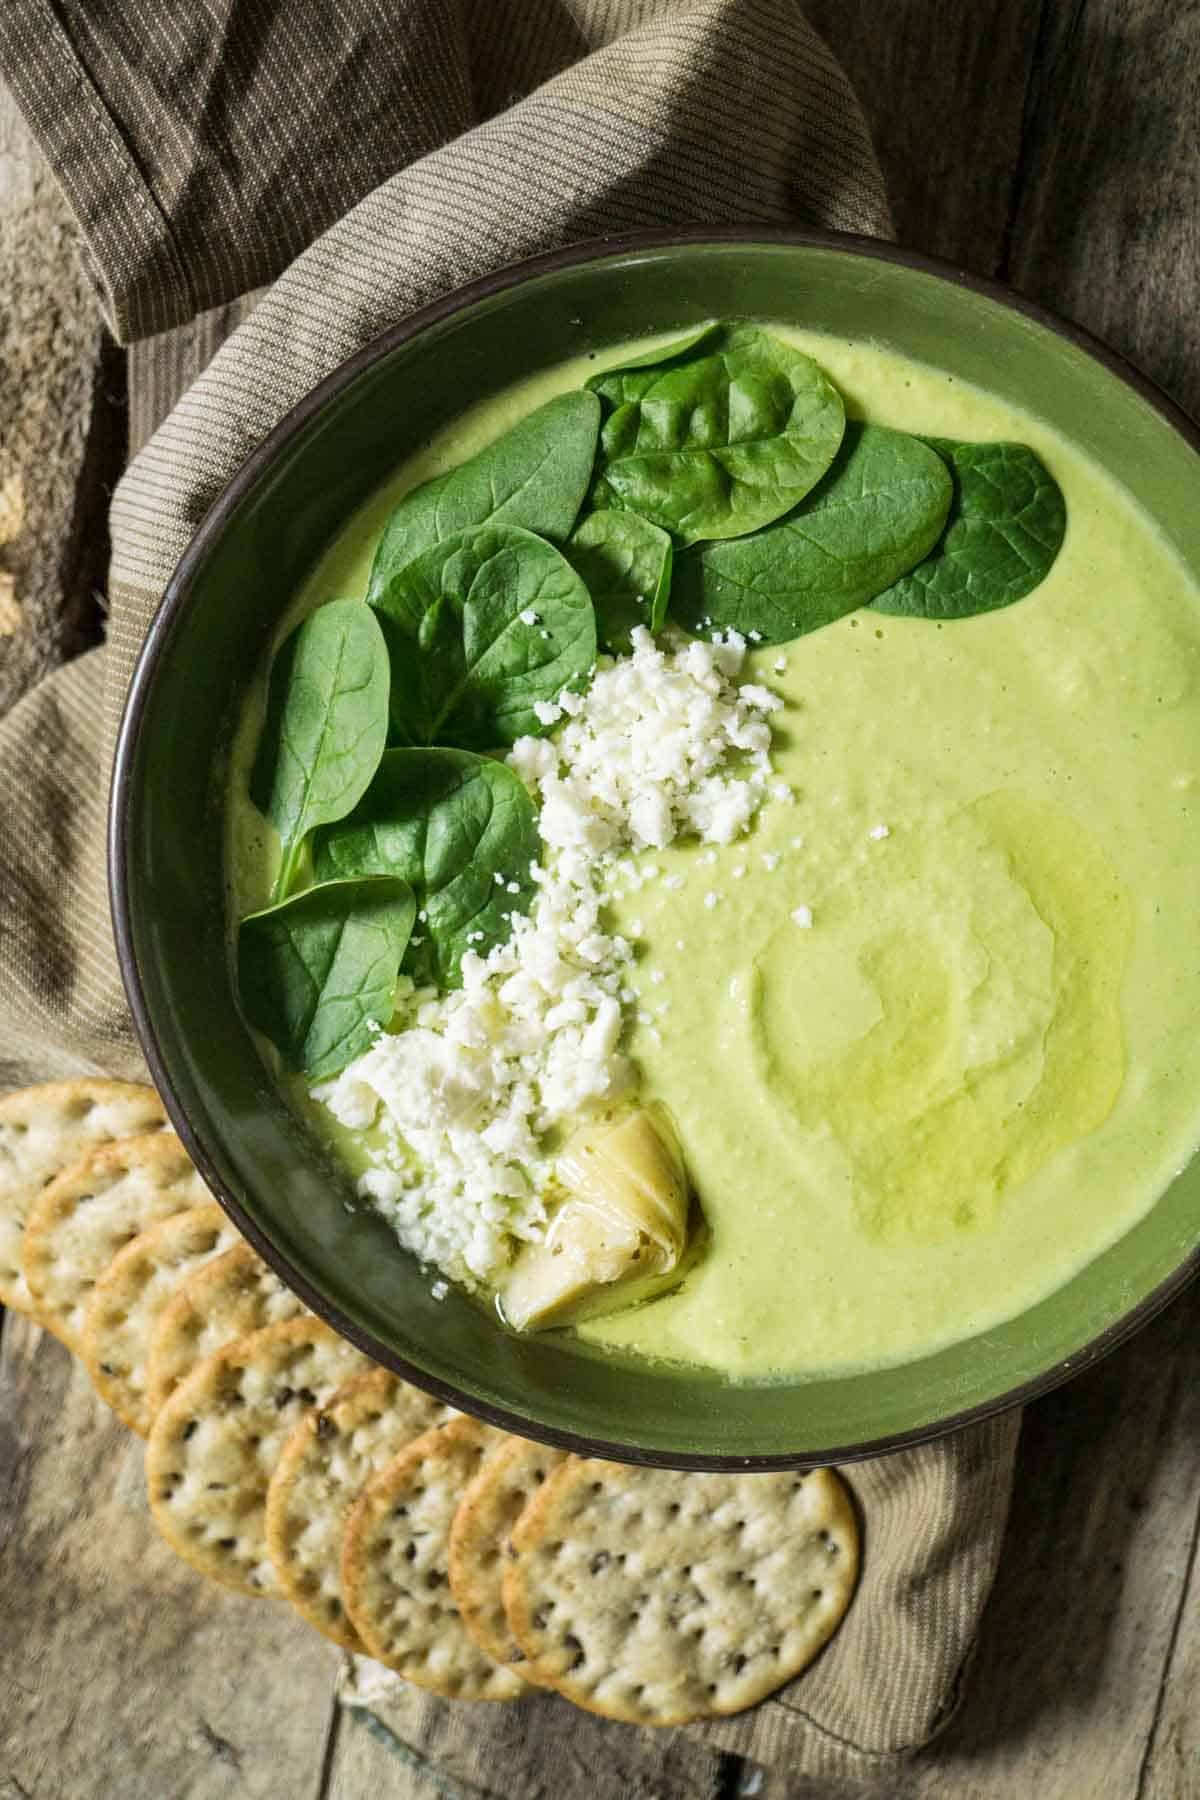 Spinach & Artichoke Hummus with Feta